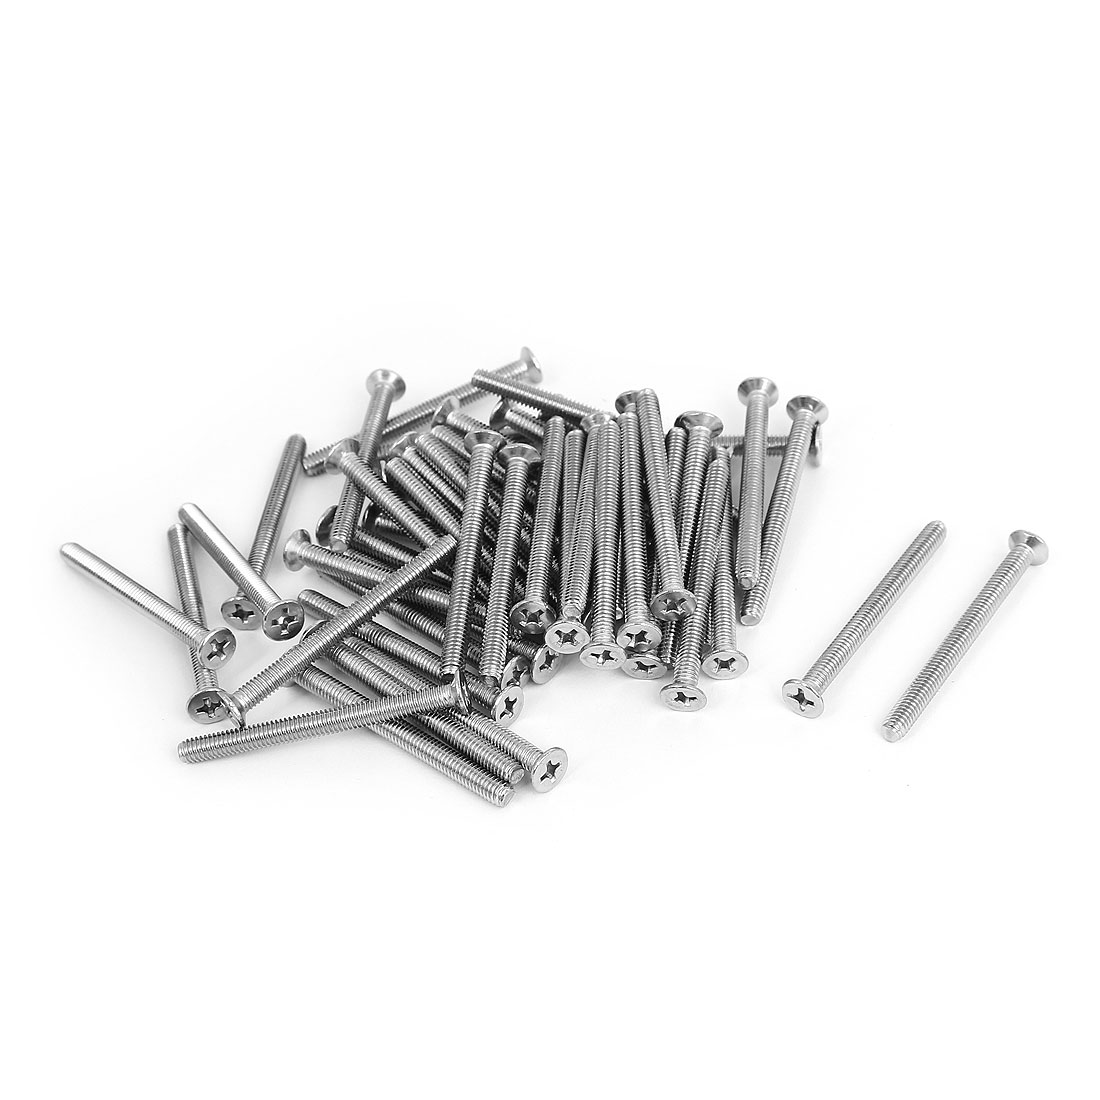 M4x45mm Stainless Steel Countersunk Flat Head Cross Phillips Screw Bolts 50pcs